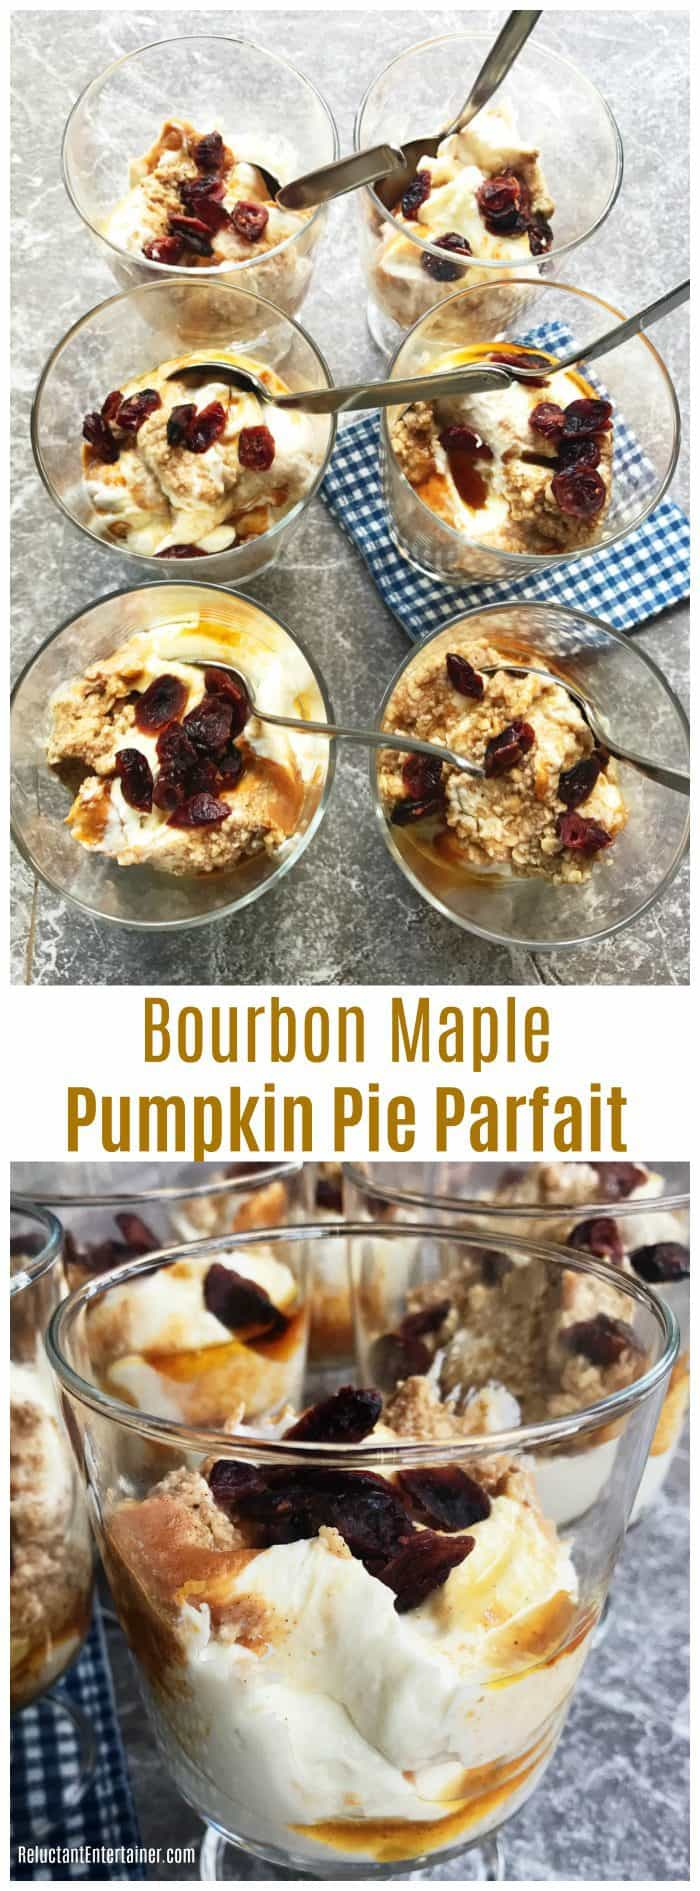 Bourbon Maple Pumpkin Pie Parfait